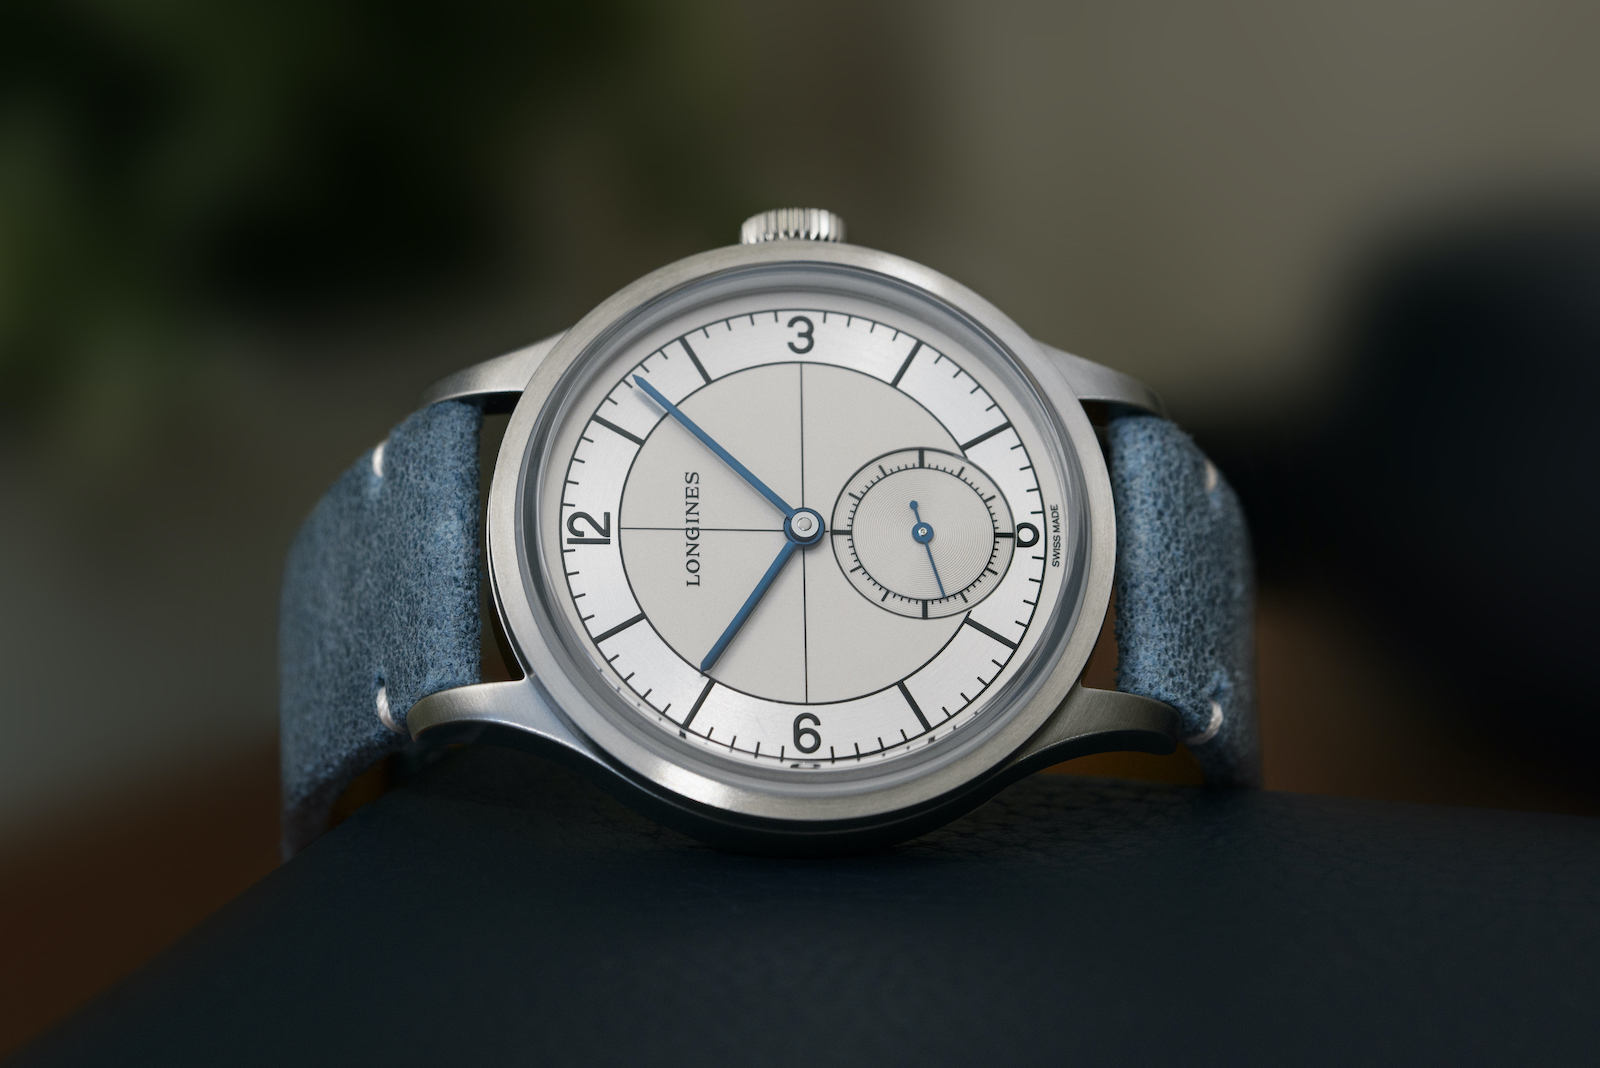 The Longines Heritage Classic L2.828.4.73.2 Lifestyle